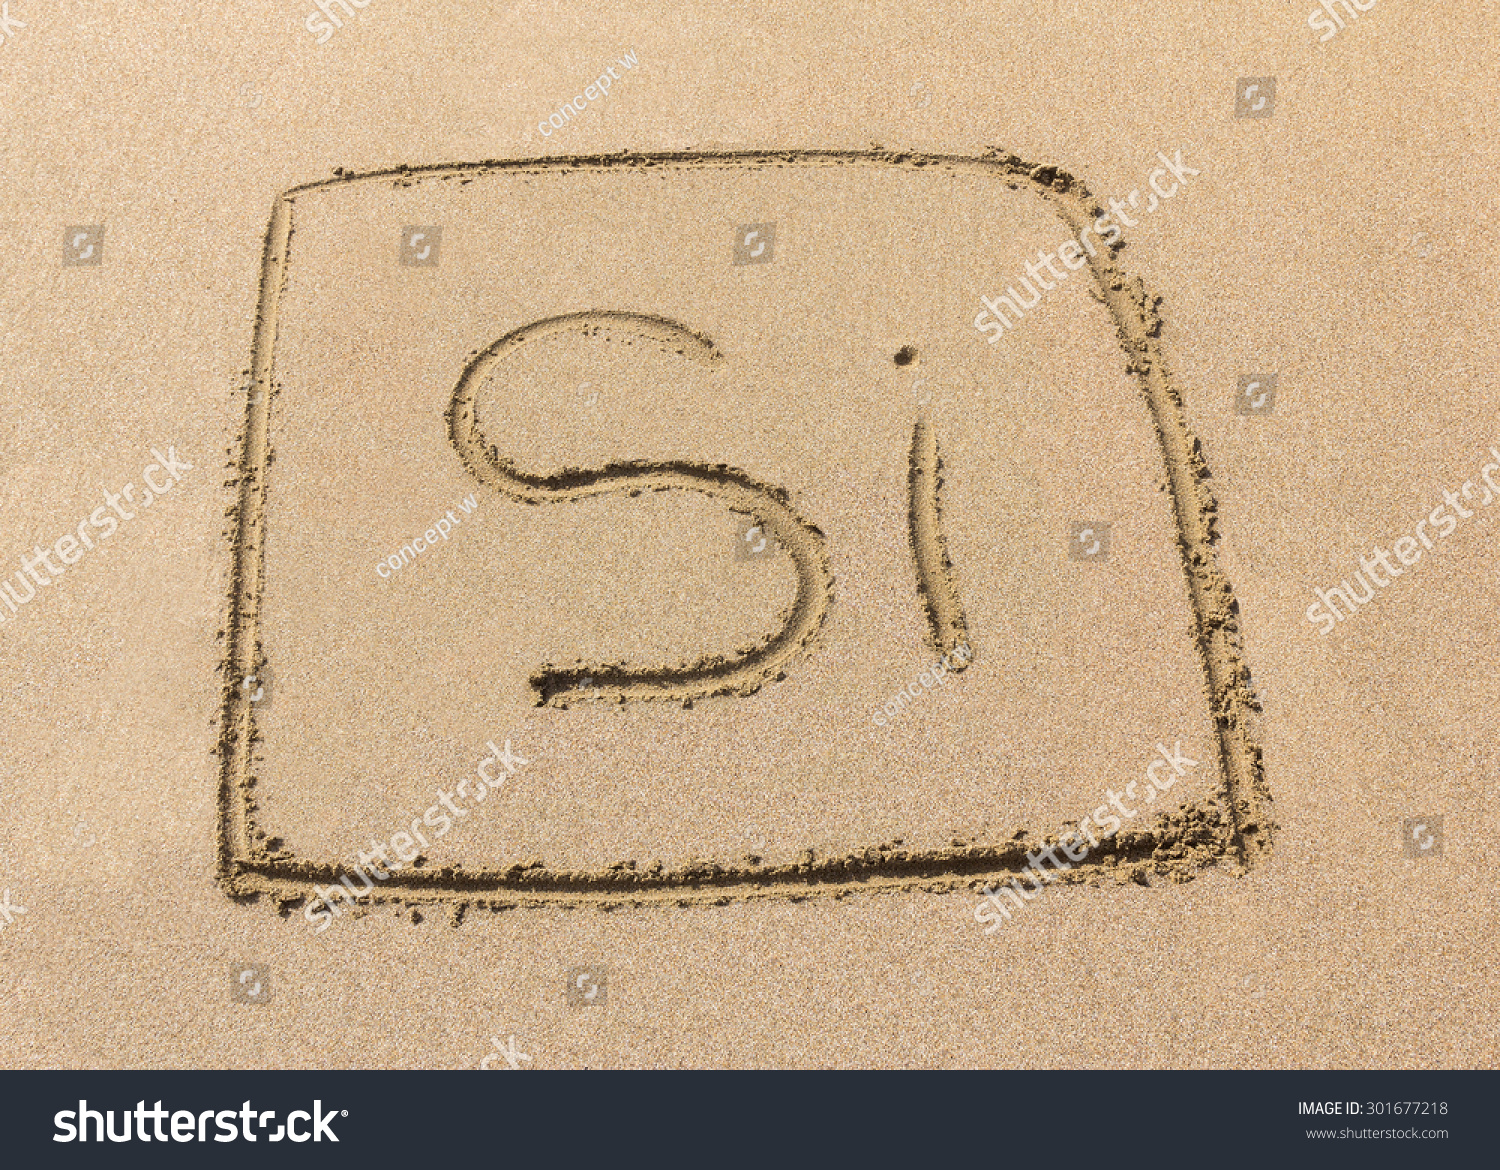 Silicon symbol drawn on sand stock photo 301677218 shutterstock silicon symbol drawn on sand biocorpaavc Image collections